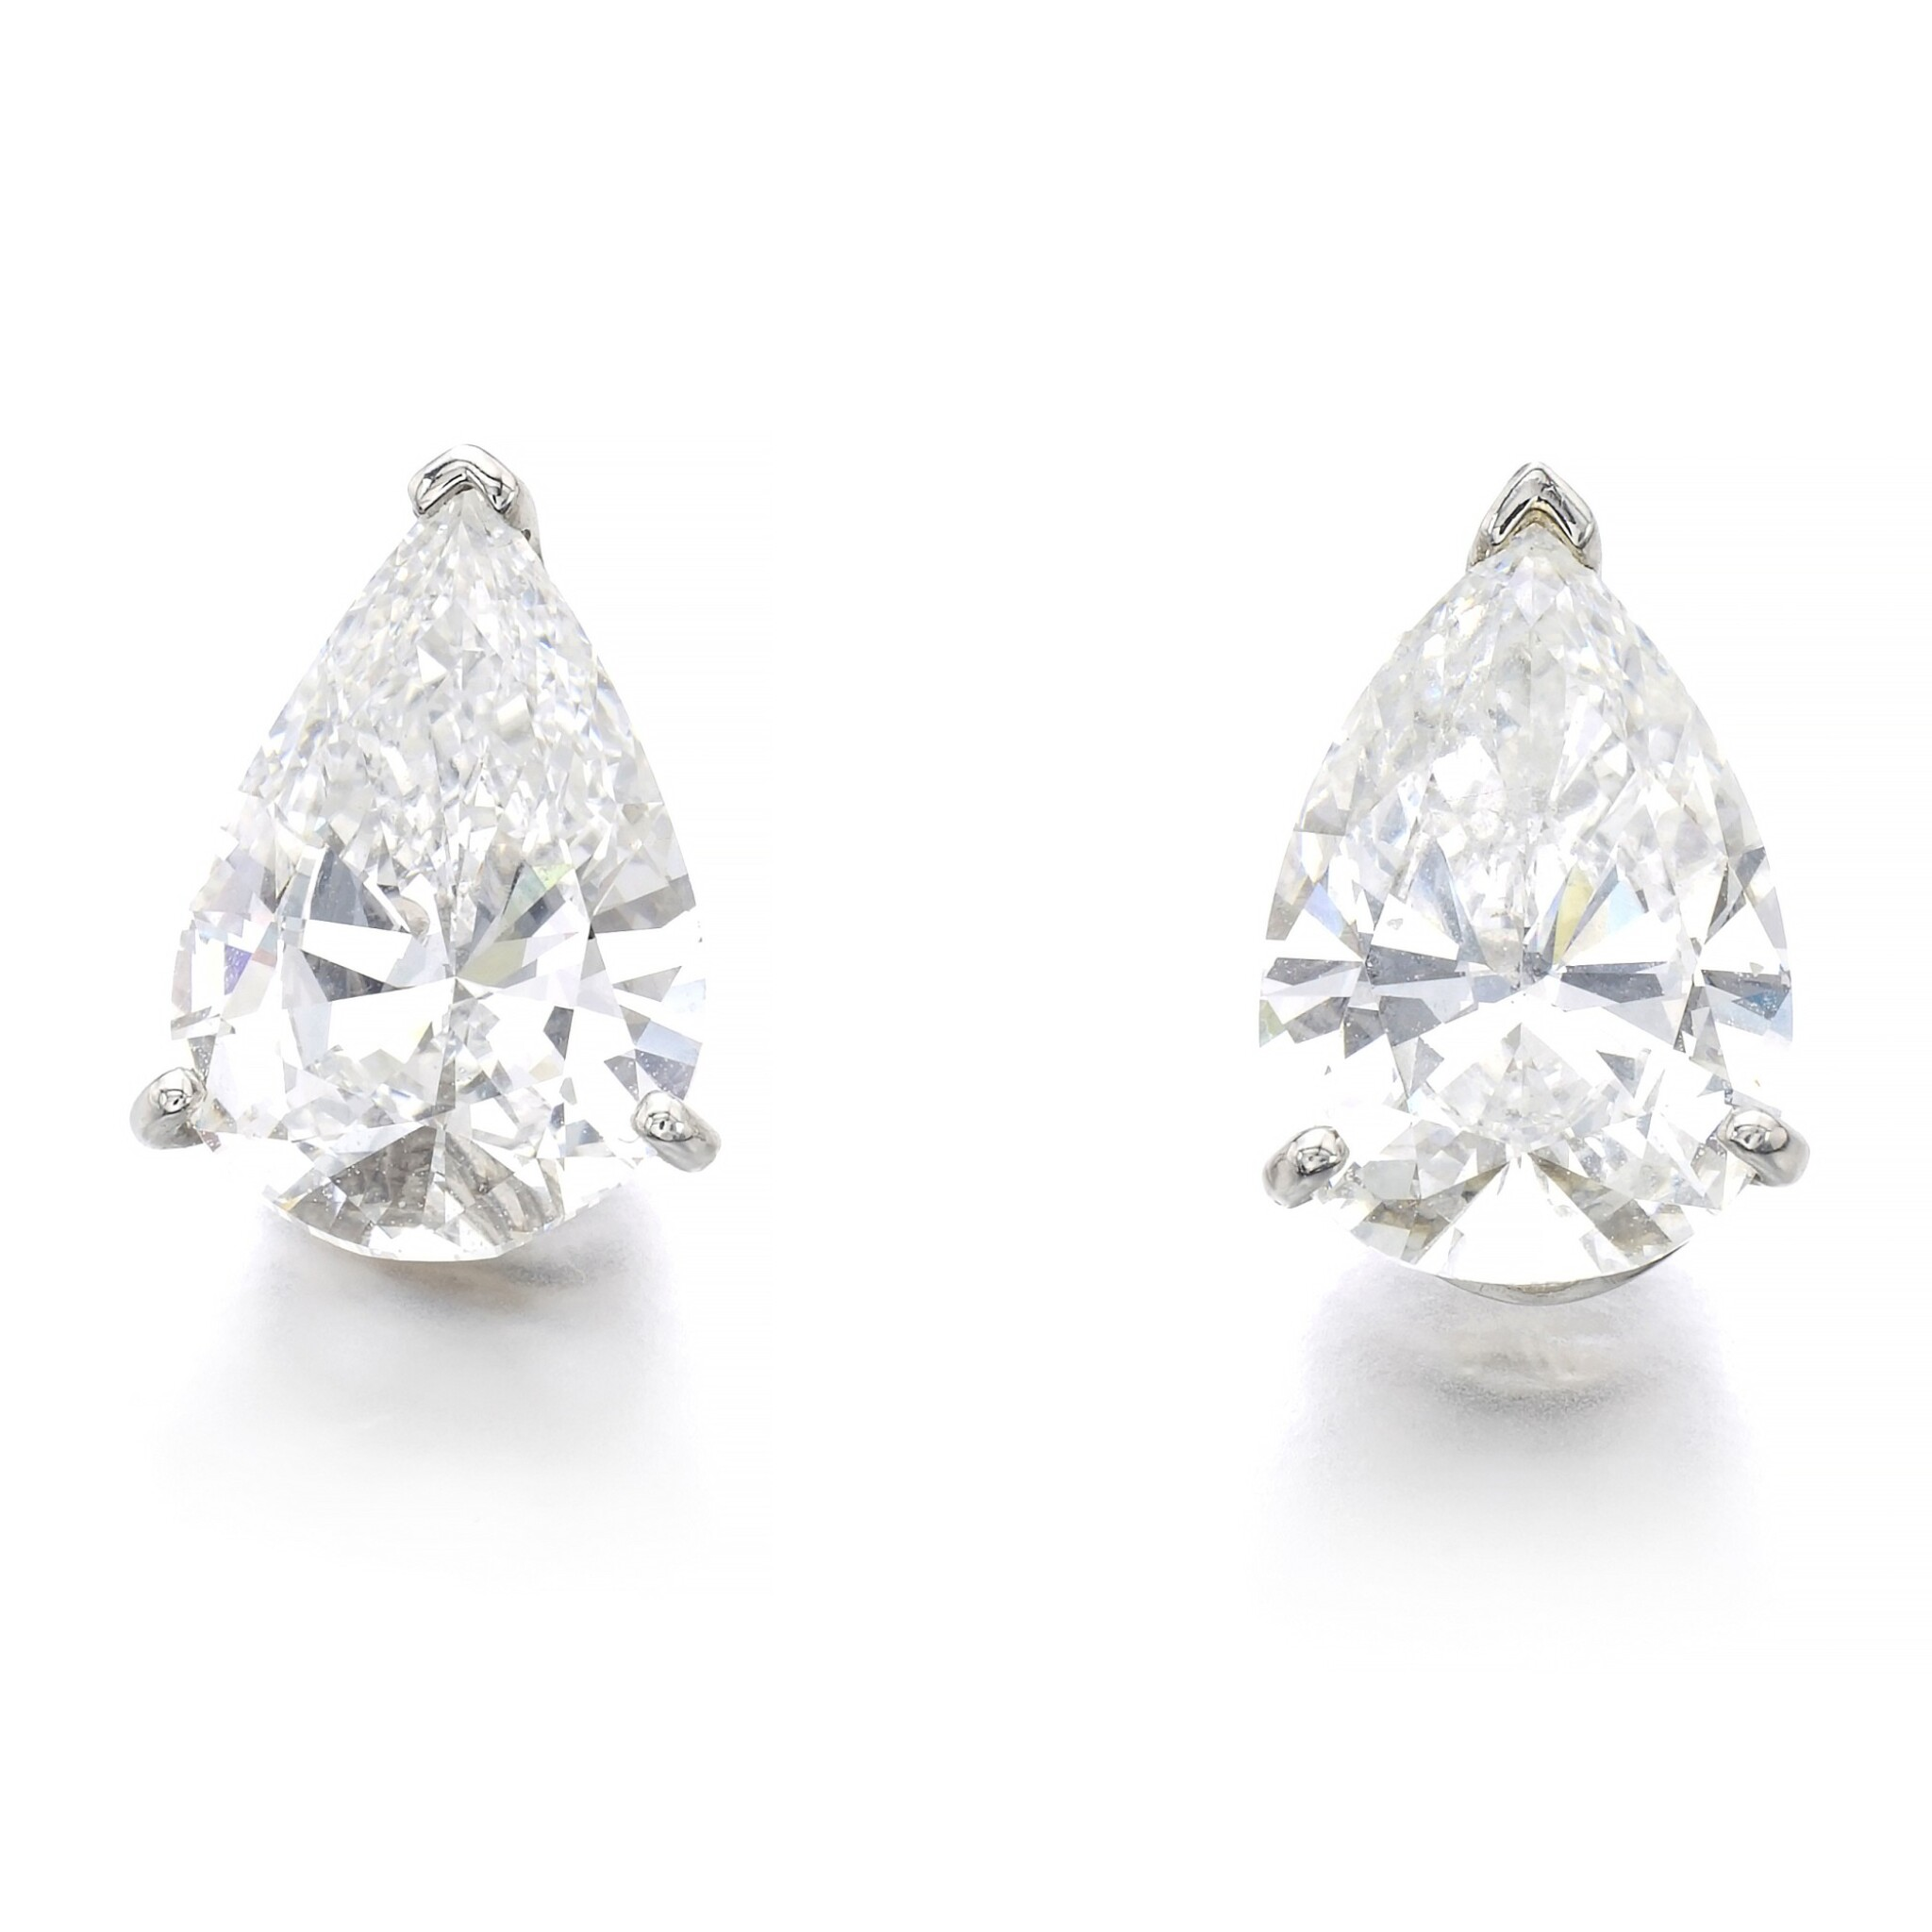 View 1 of Lot 1019. Pair of diamond ear studs.